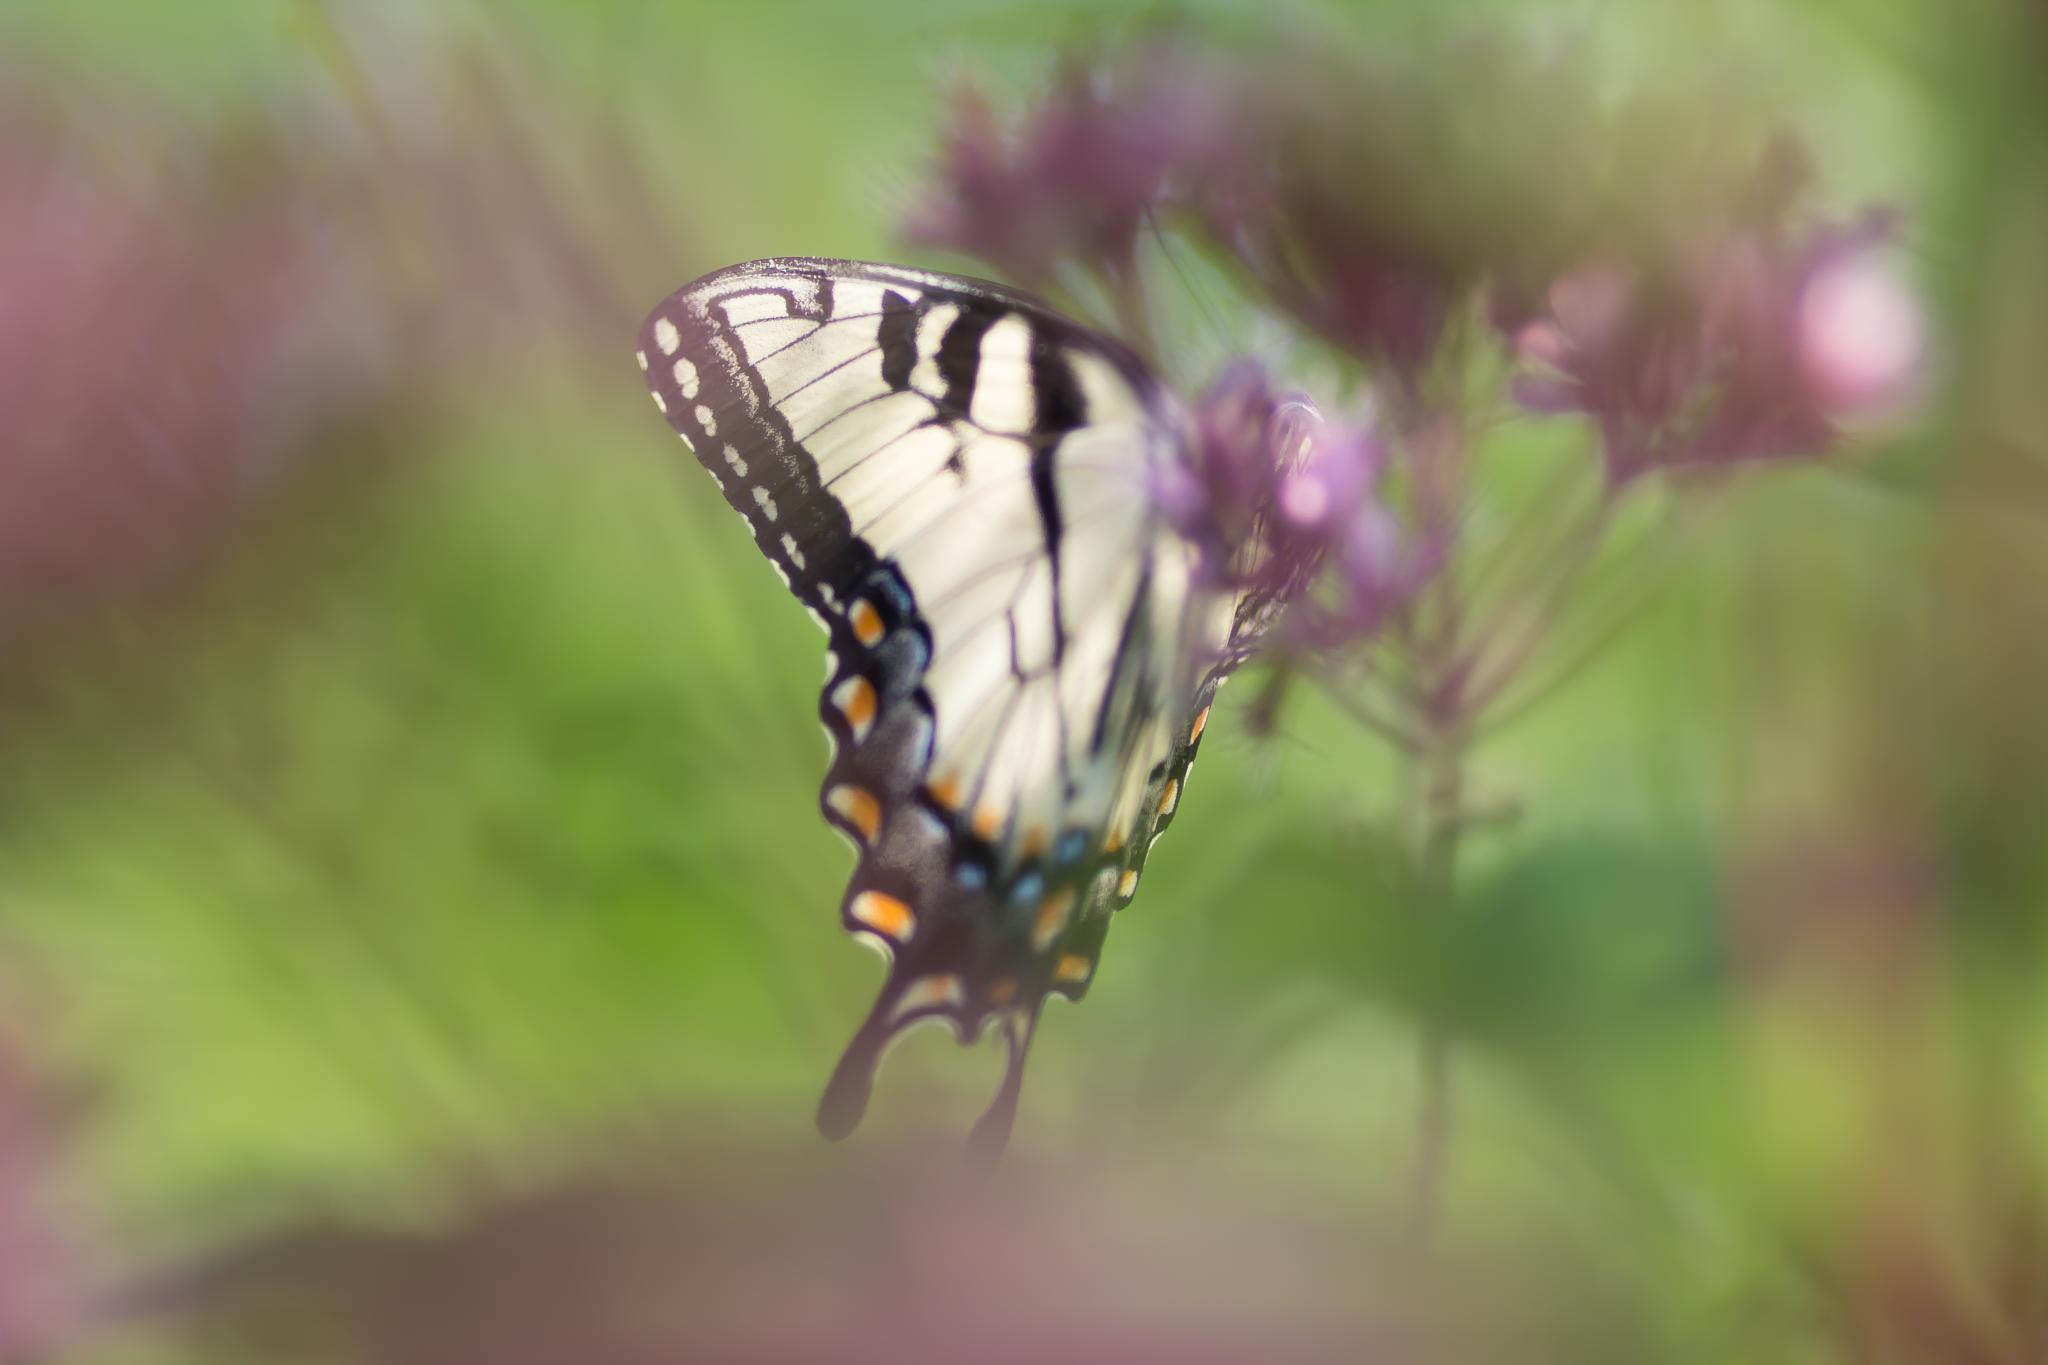 Butterfly Bokeh Too by The Butterfly Huntress